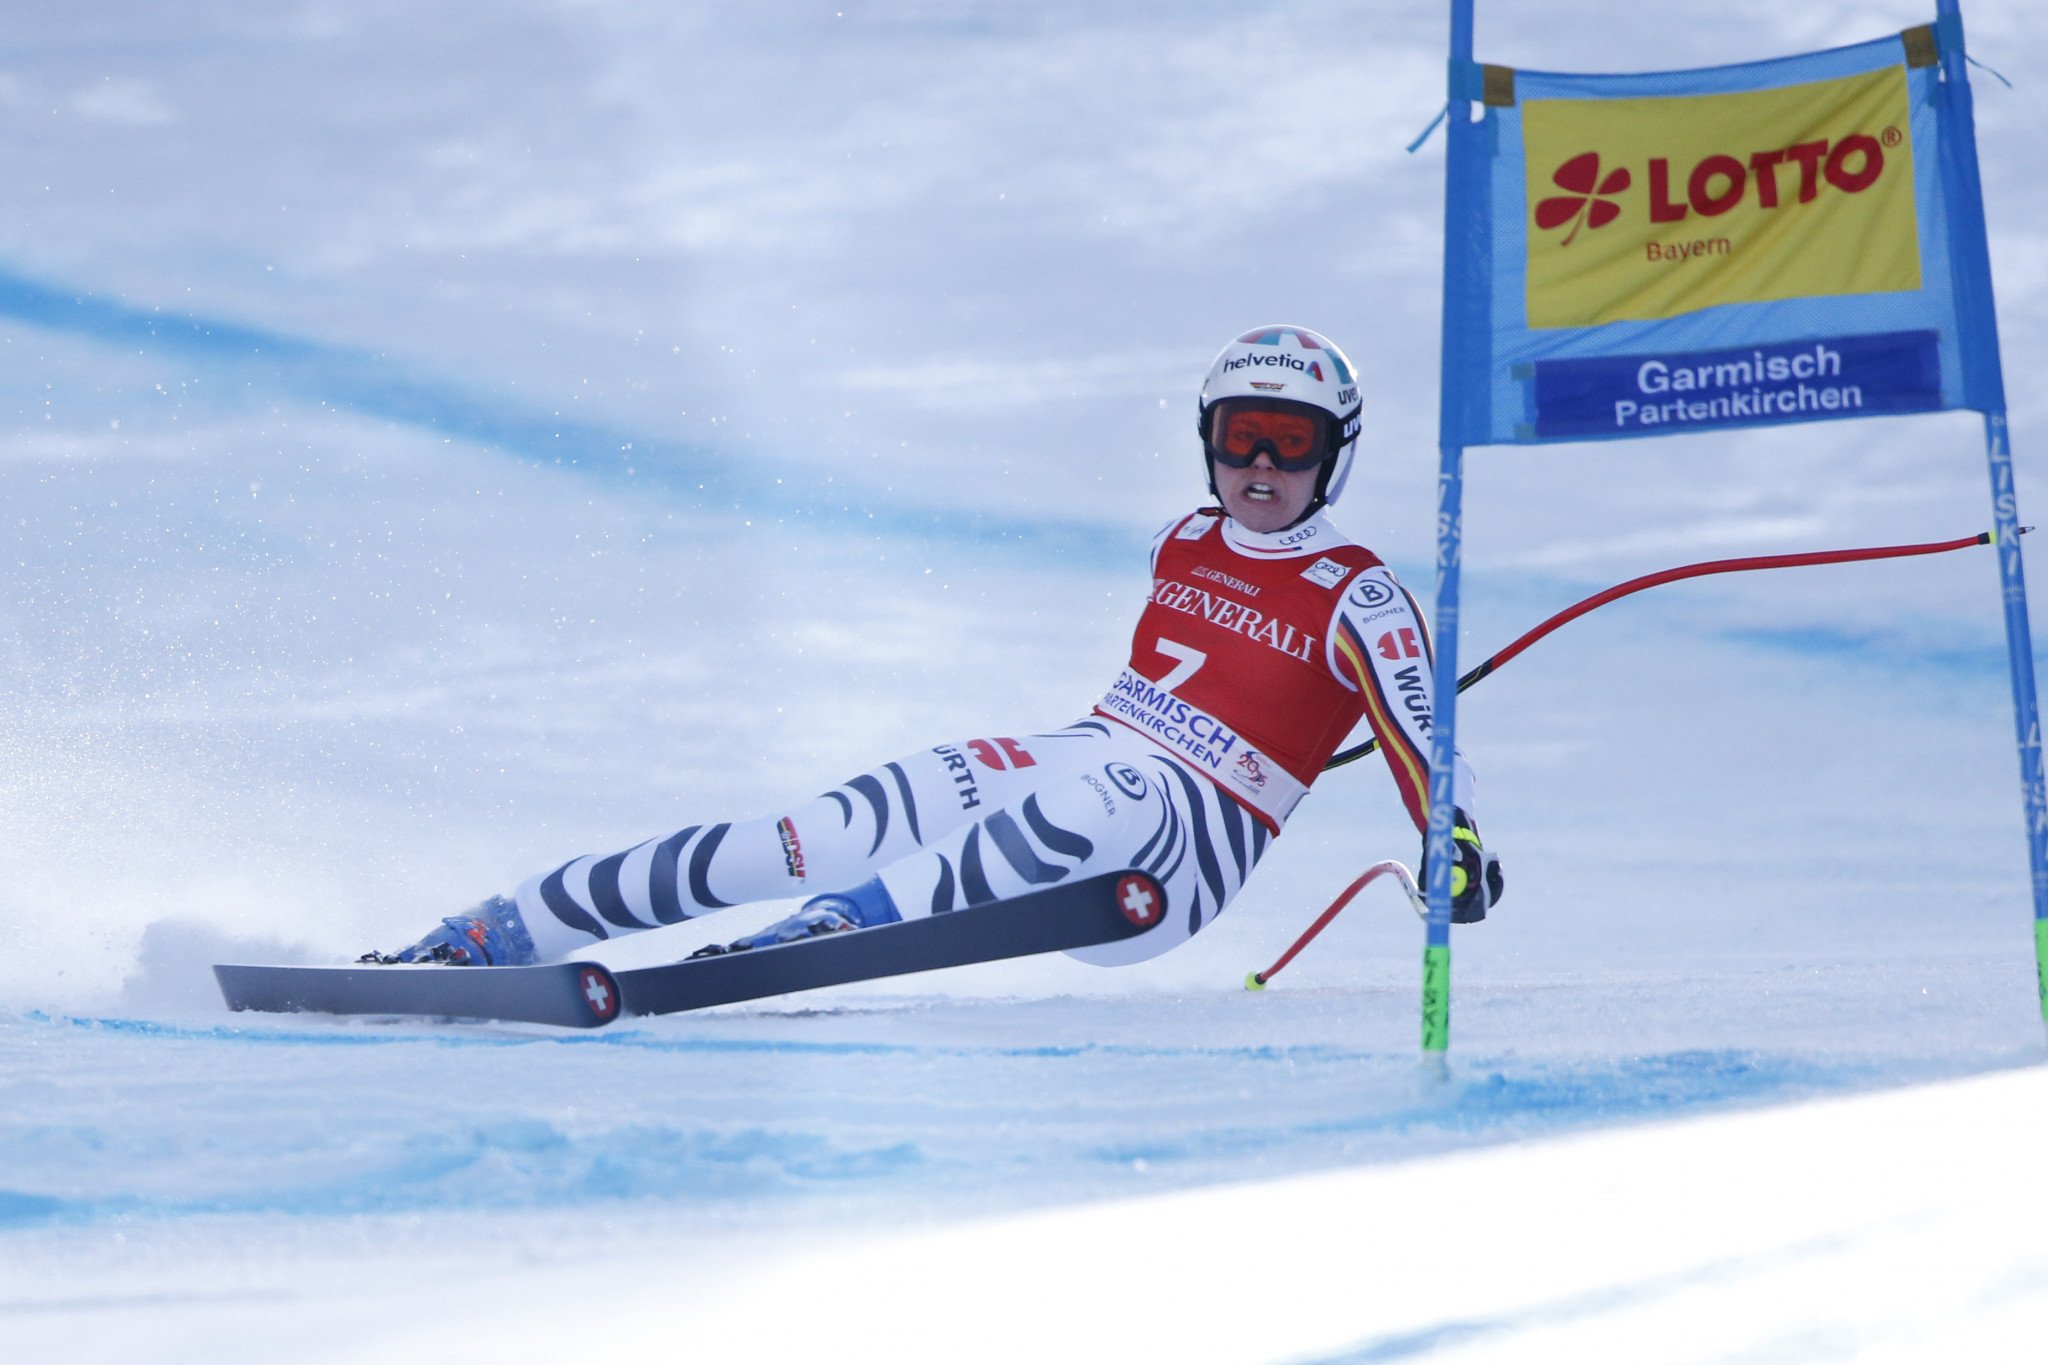 A fractured tibia has brought a premature end to Viktoria Rebensburg's season ©Getty Images